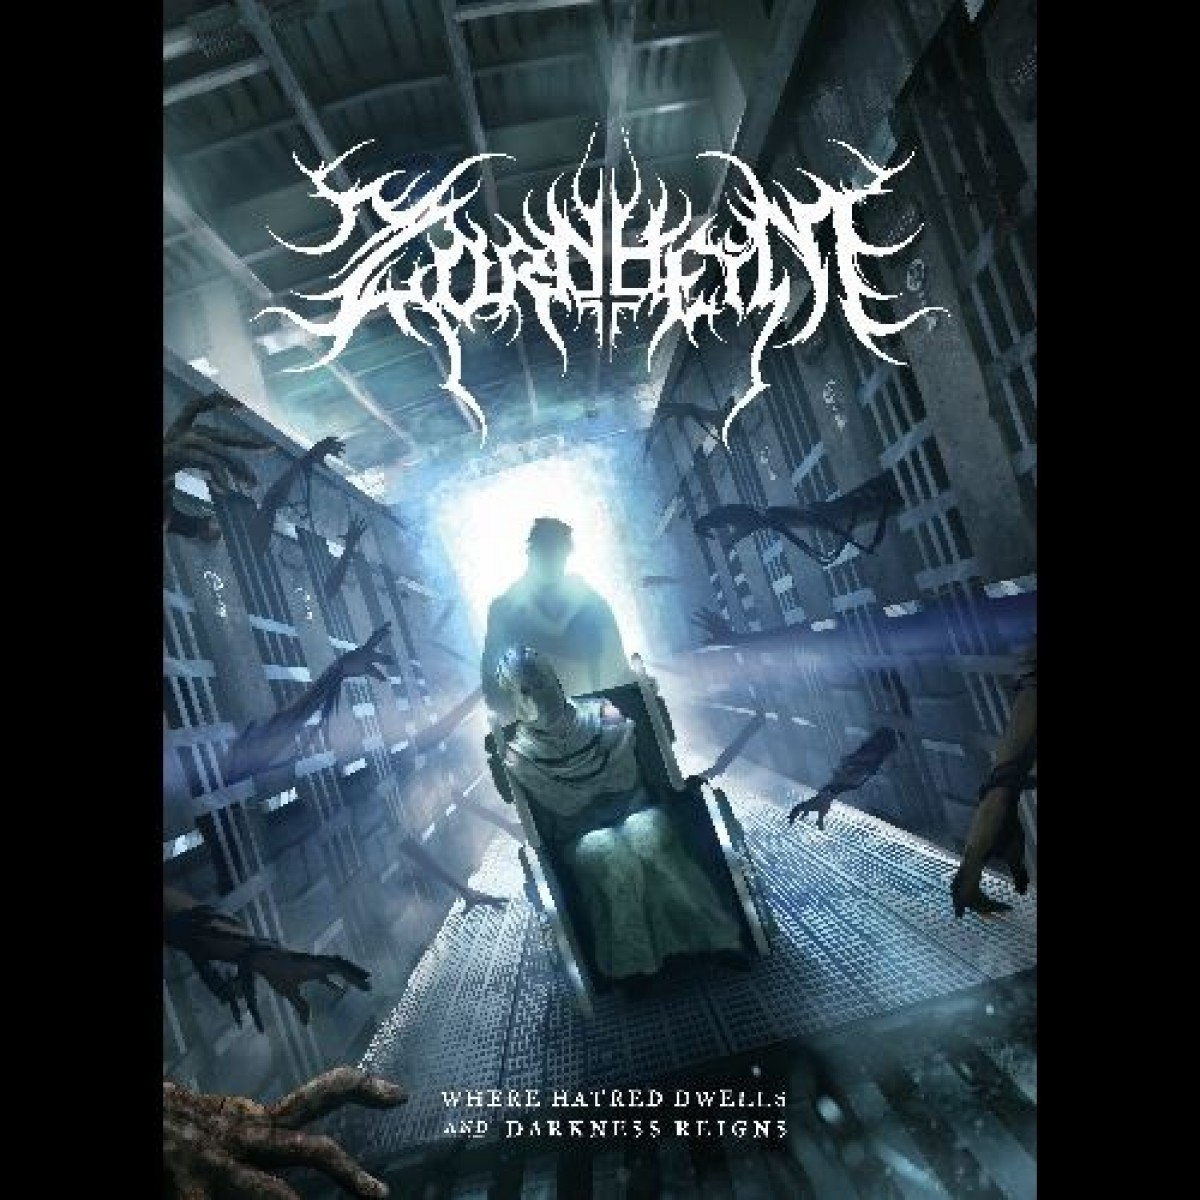 Zornheym - Where Hatred Dwells and Darkness Reigns  (A5 Digipak)